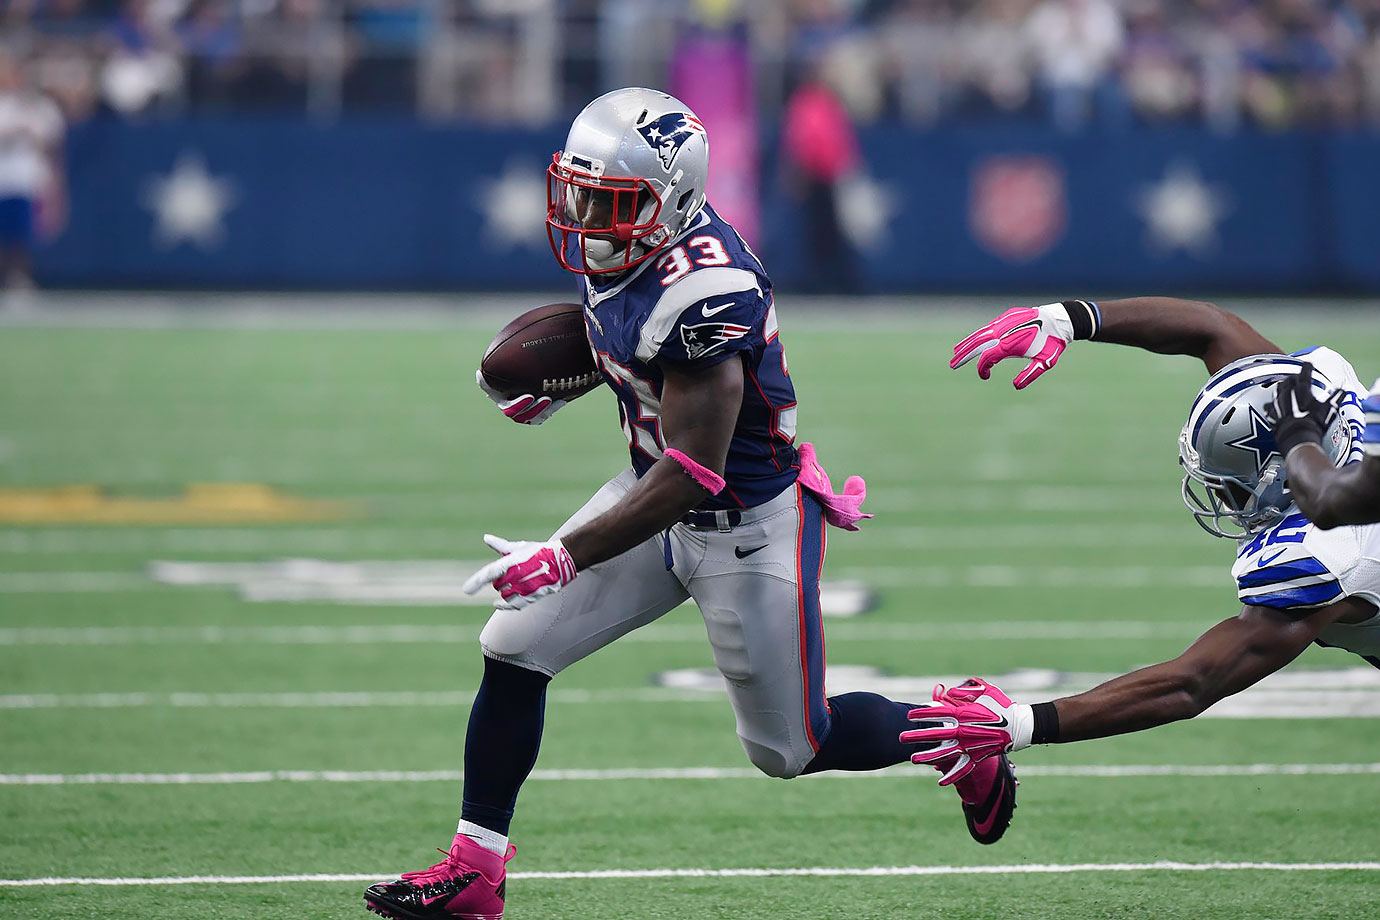 803441490 NFL tone-deaf to limit DeAngelo Williams wearing pink